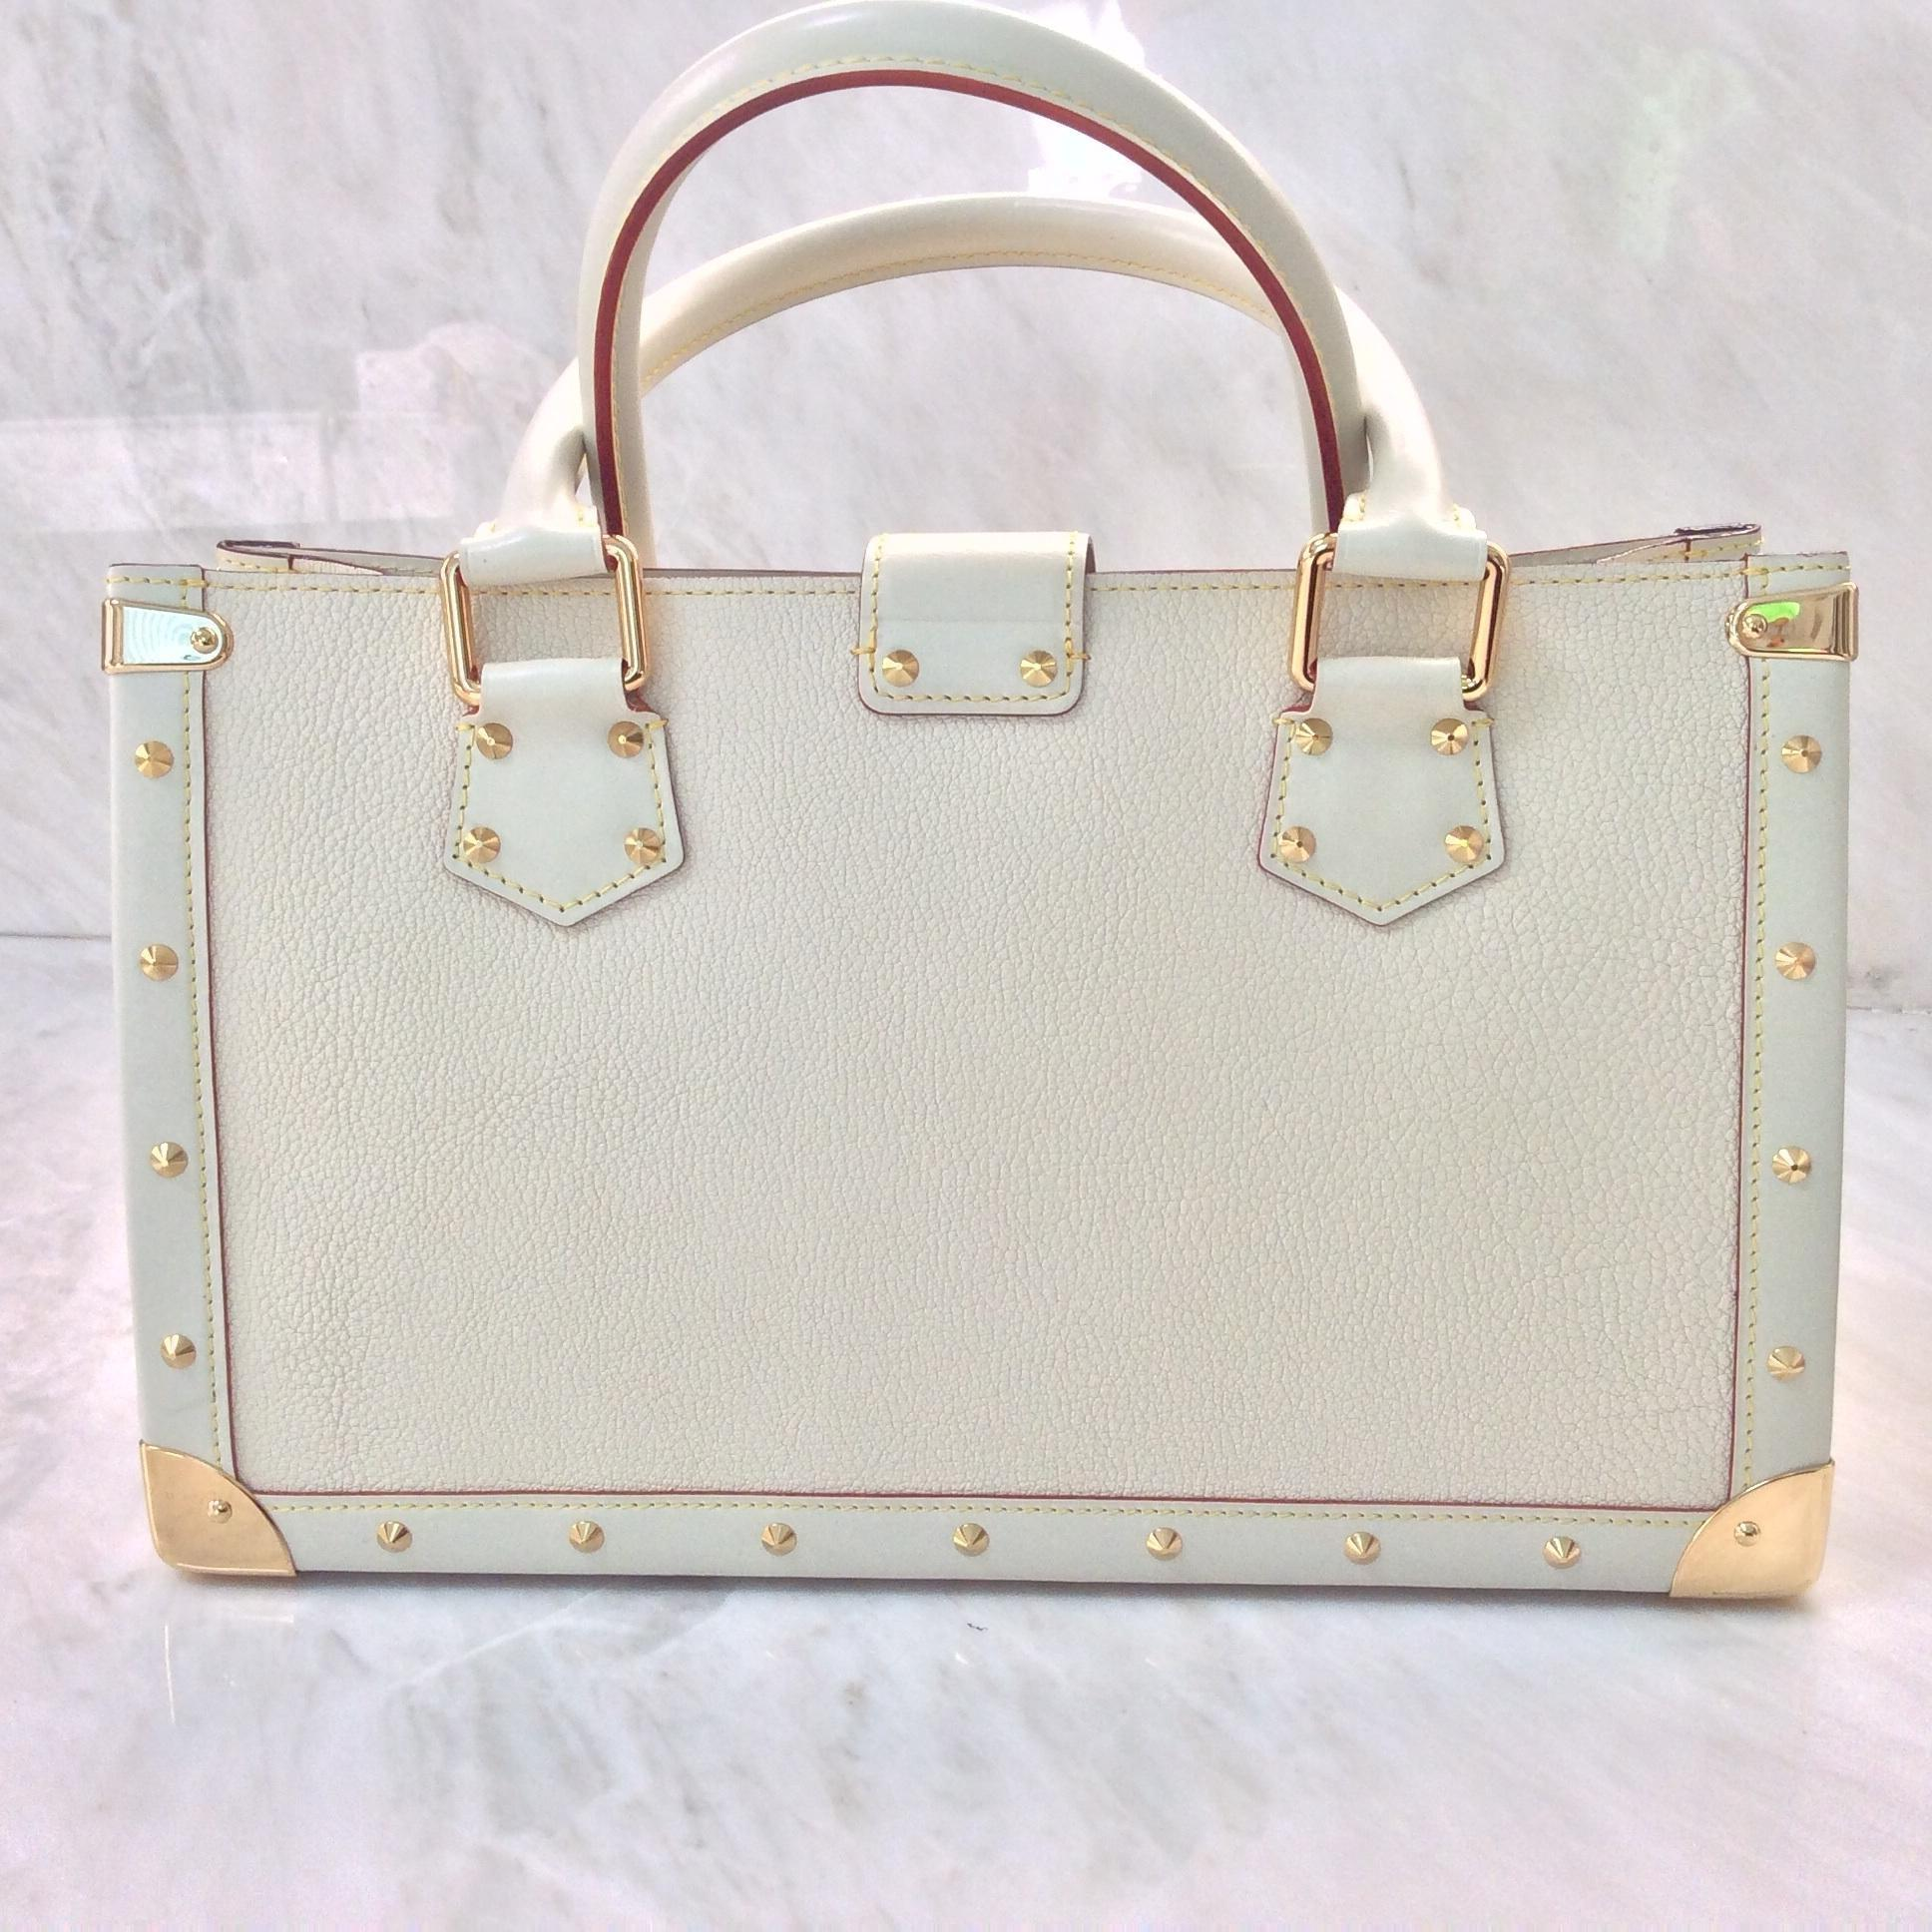 Louis Vuitton Suhali Le Fabuleux Studded Handbag Cream Satchel on ...